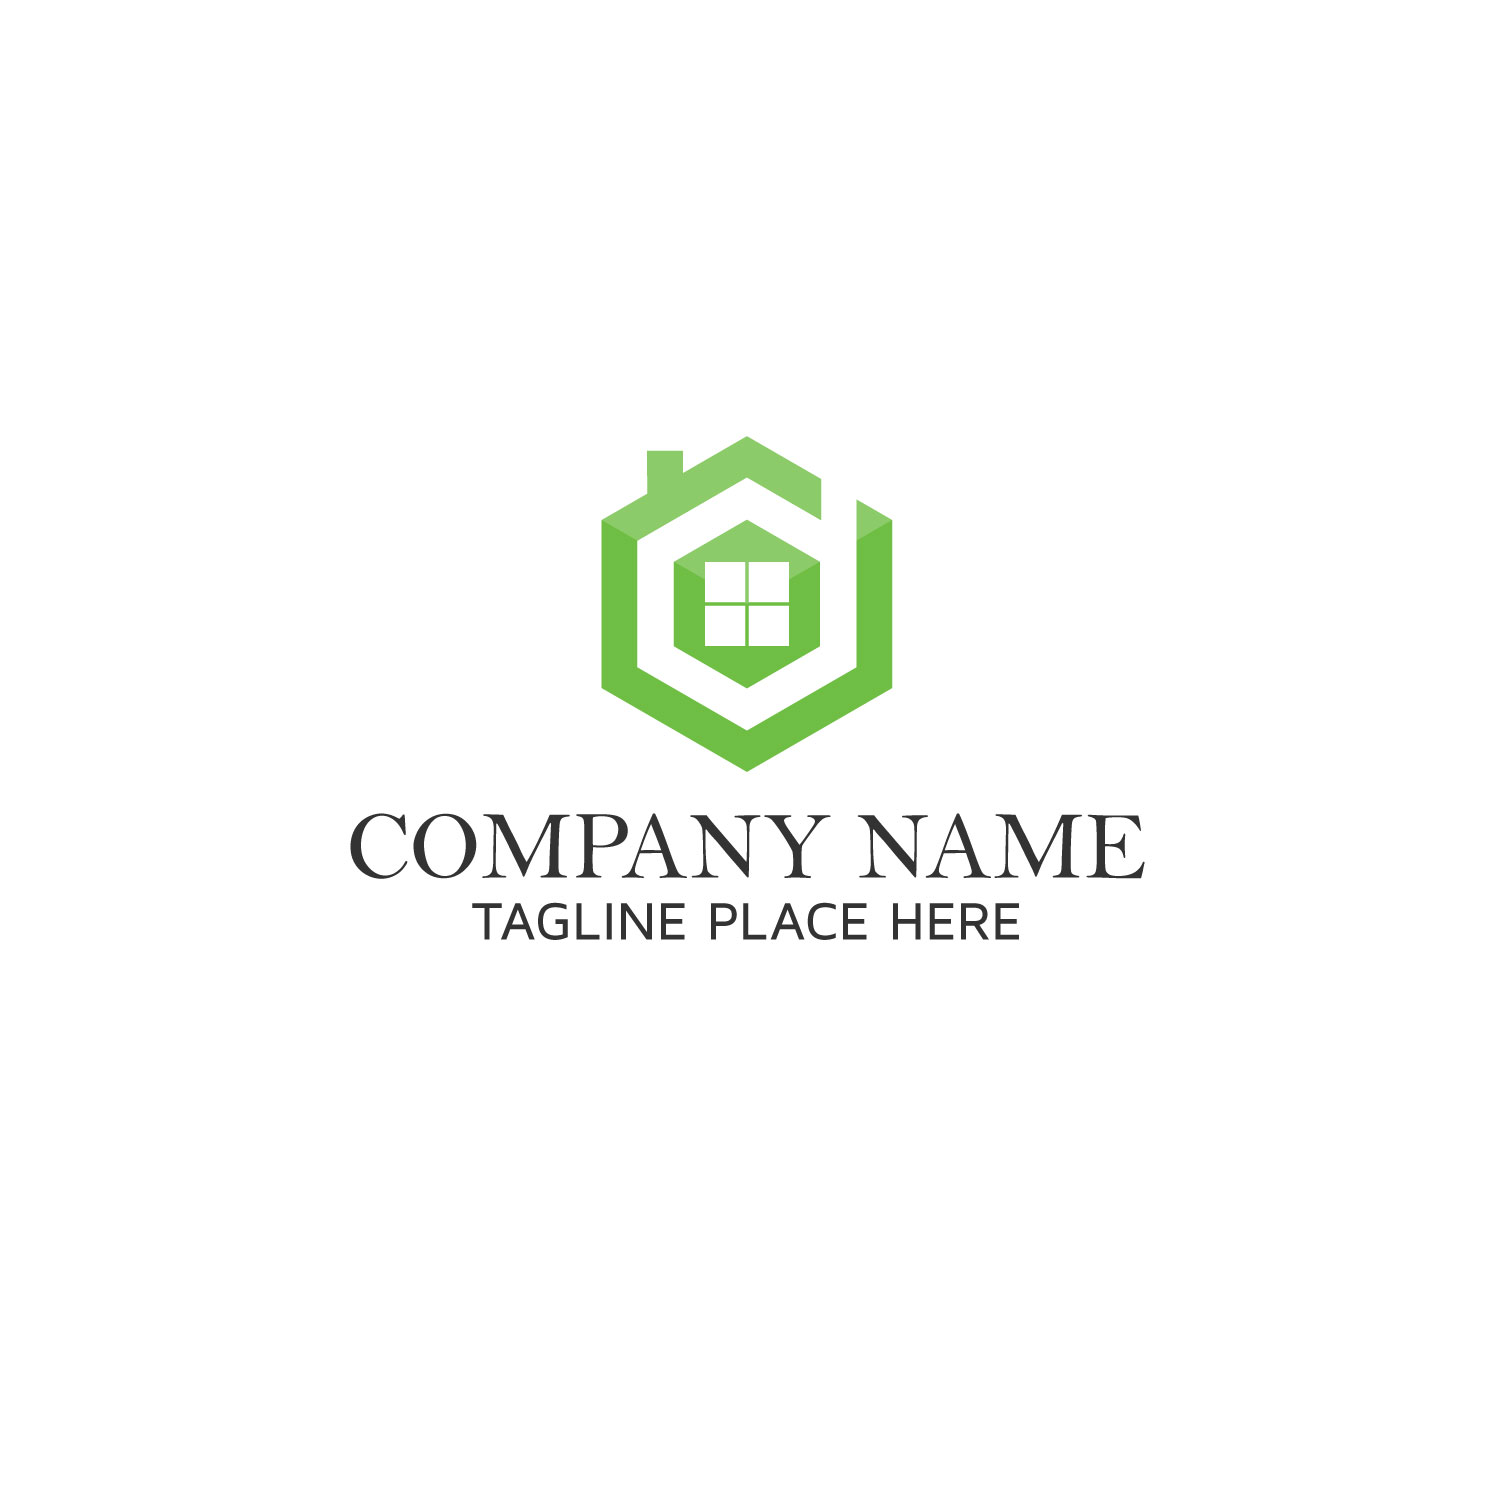 Modern Real Estate Logo by Sj_design  a perfect logo for Real Estate & Mortgage